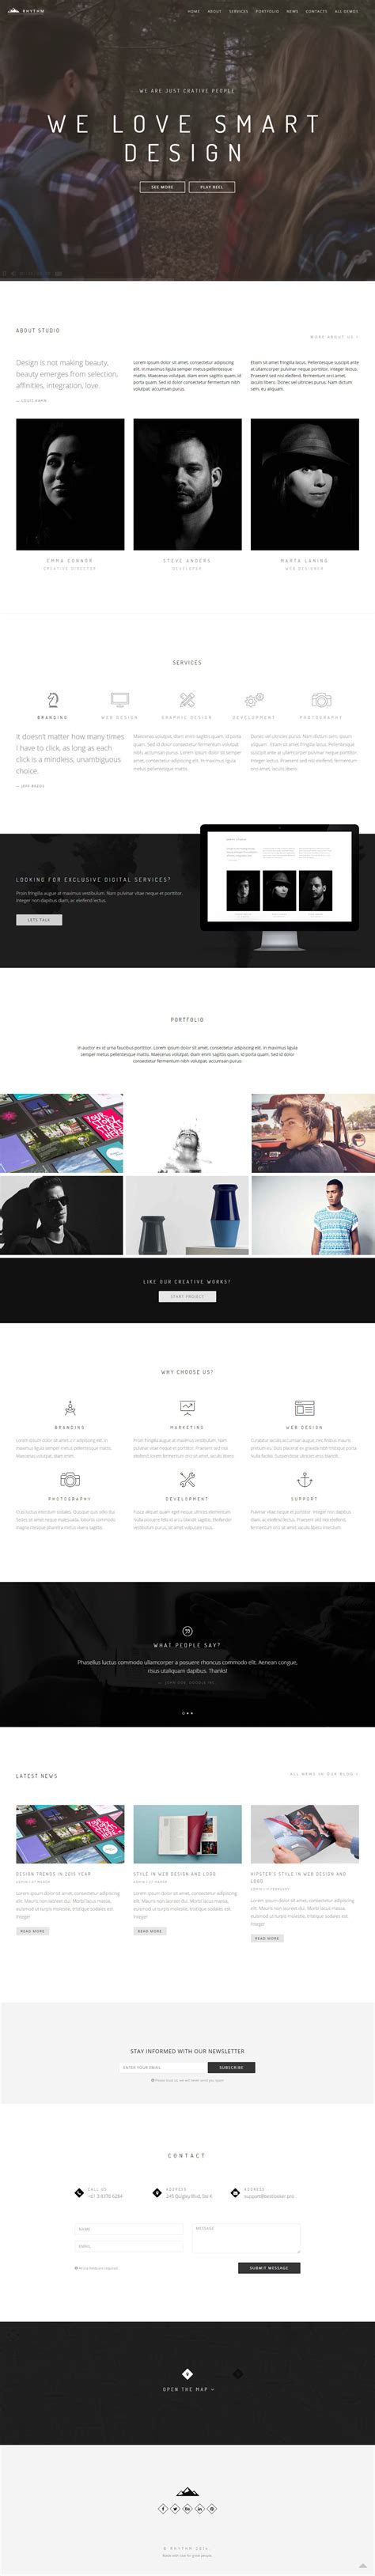 Drupal Theme With Background Image | 20 best drupal video background theme 2017 responsive